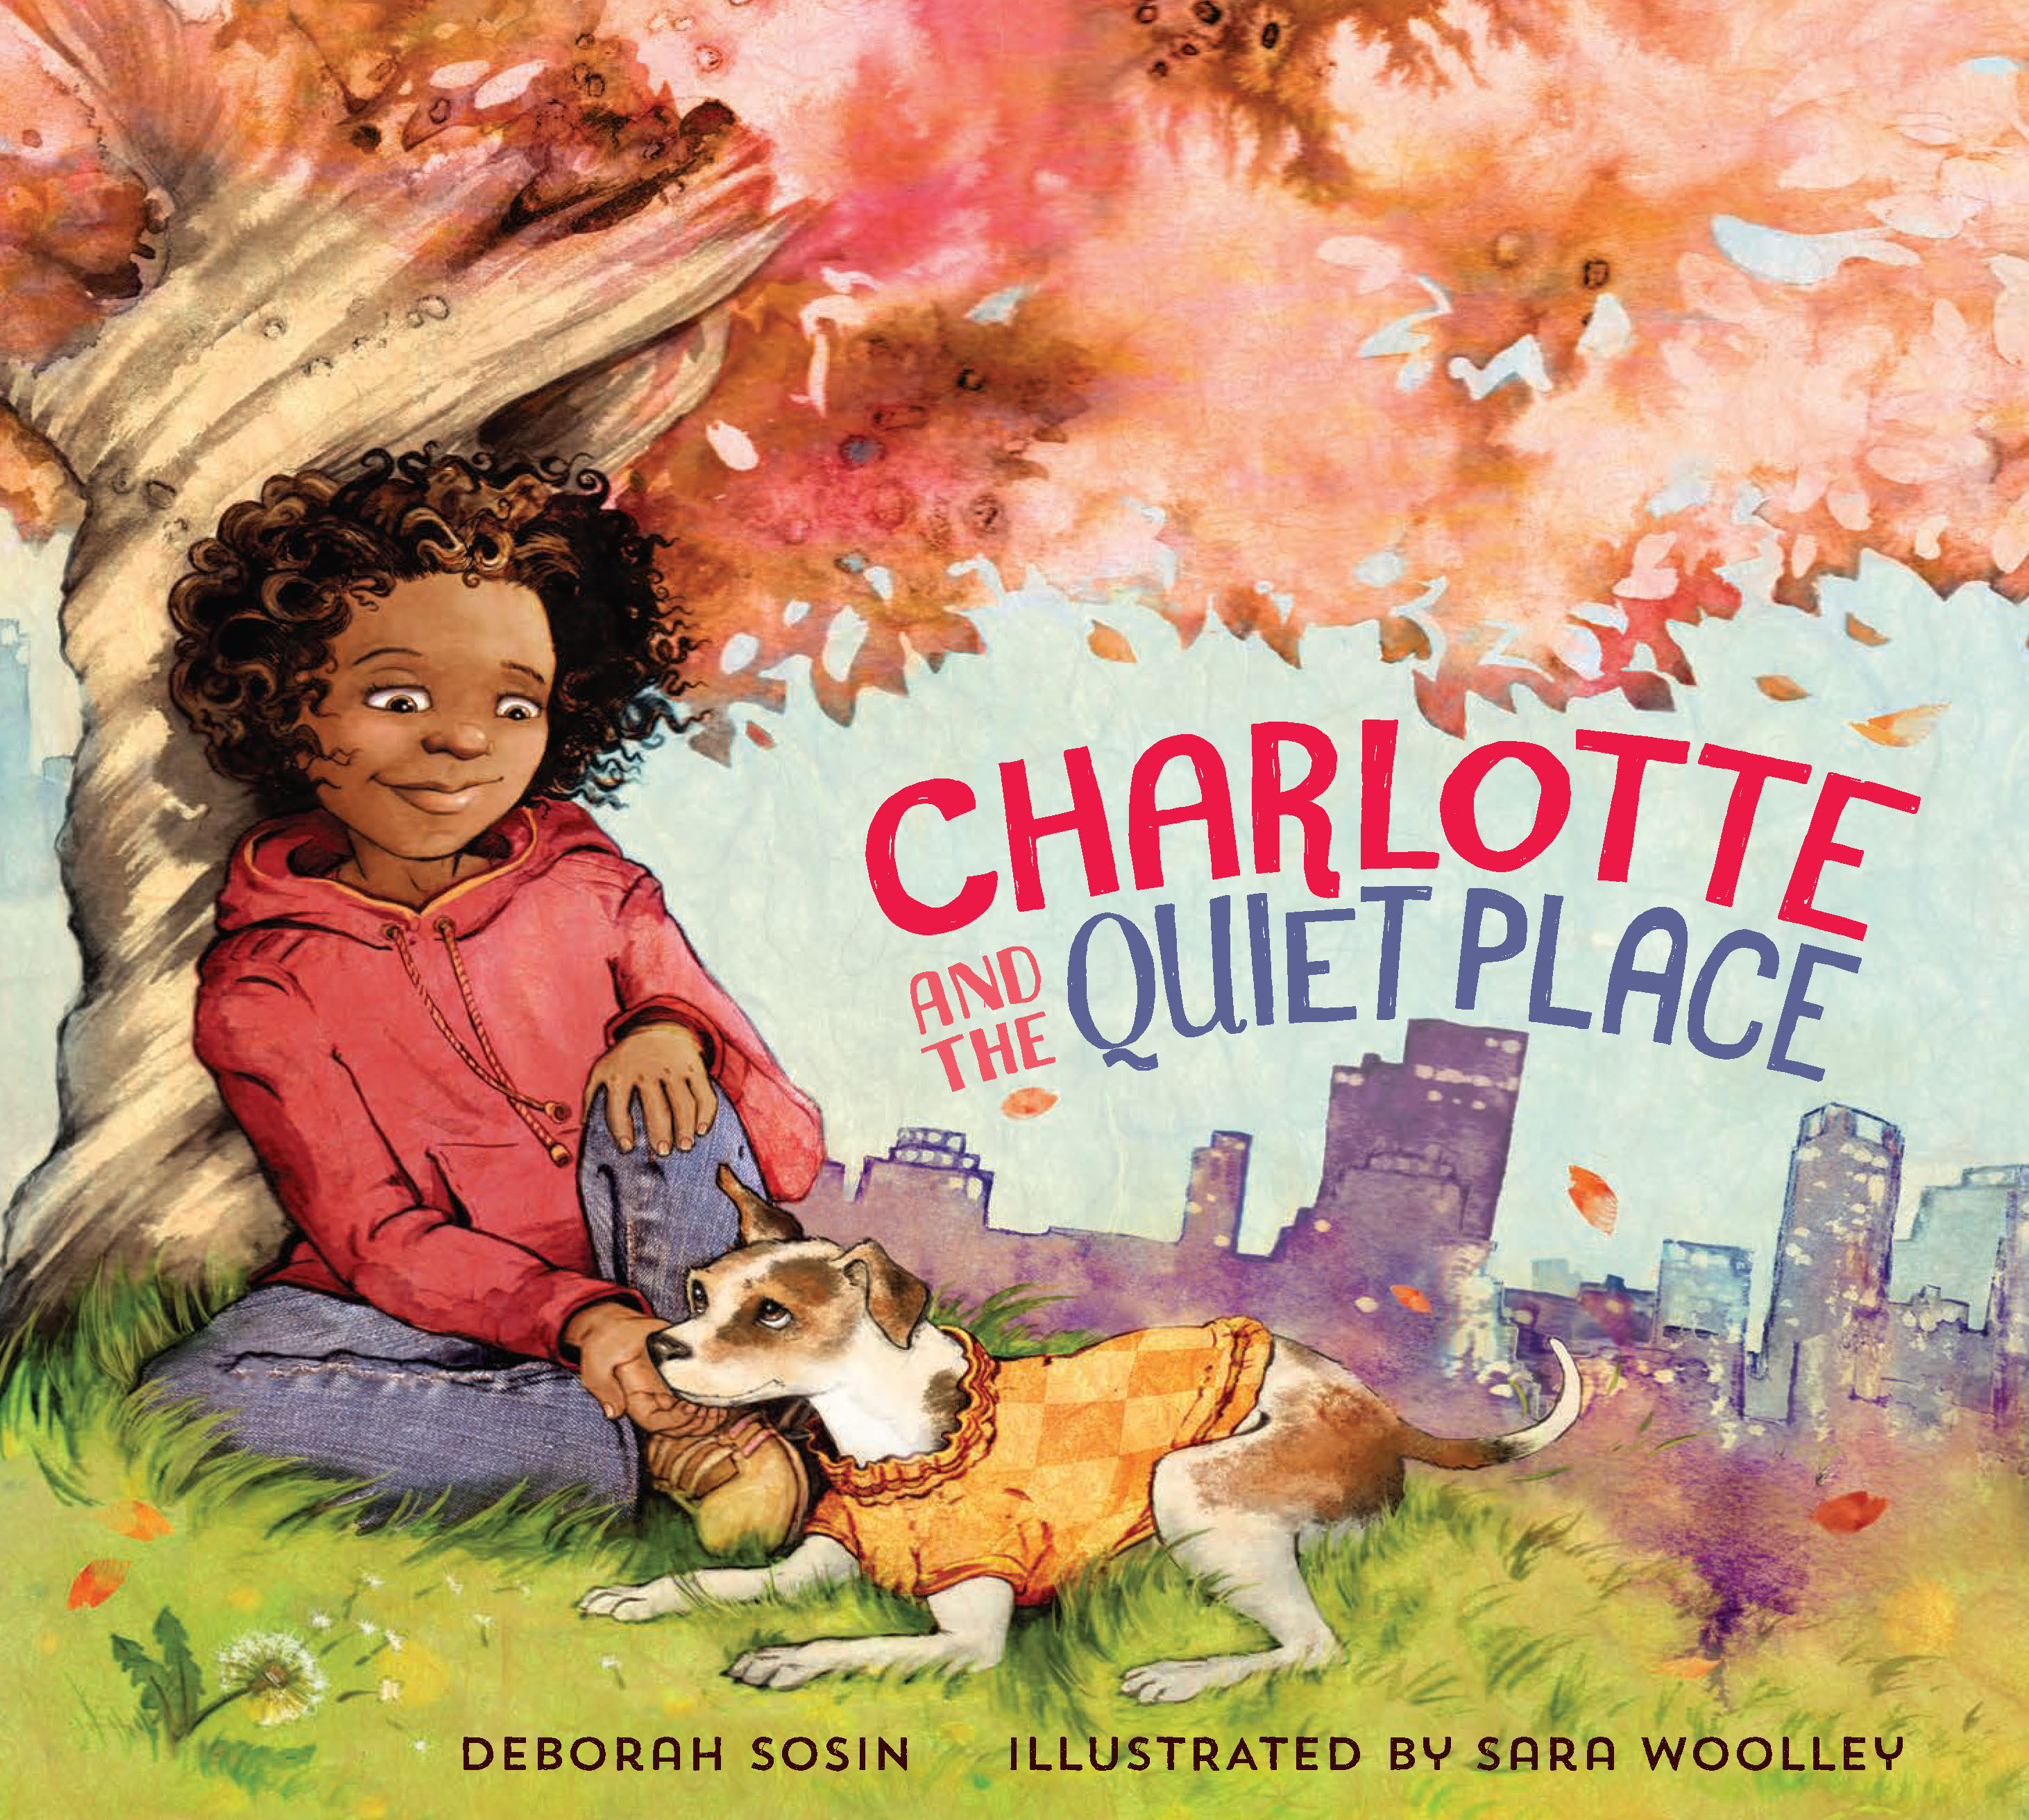 Conversation with Deborah Sosin, Author of Charlotte and the Quiet Place